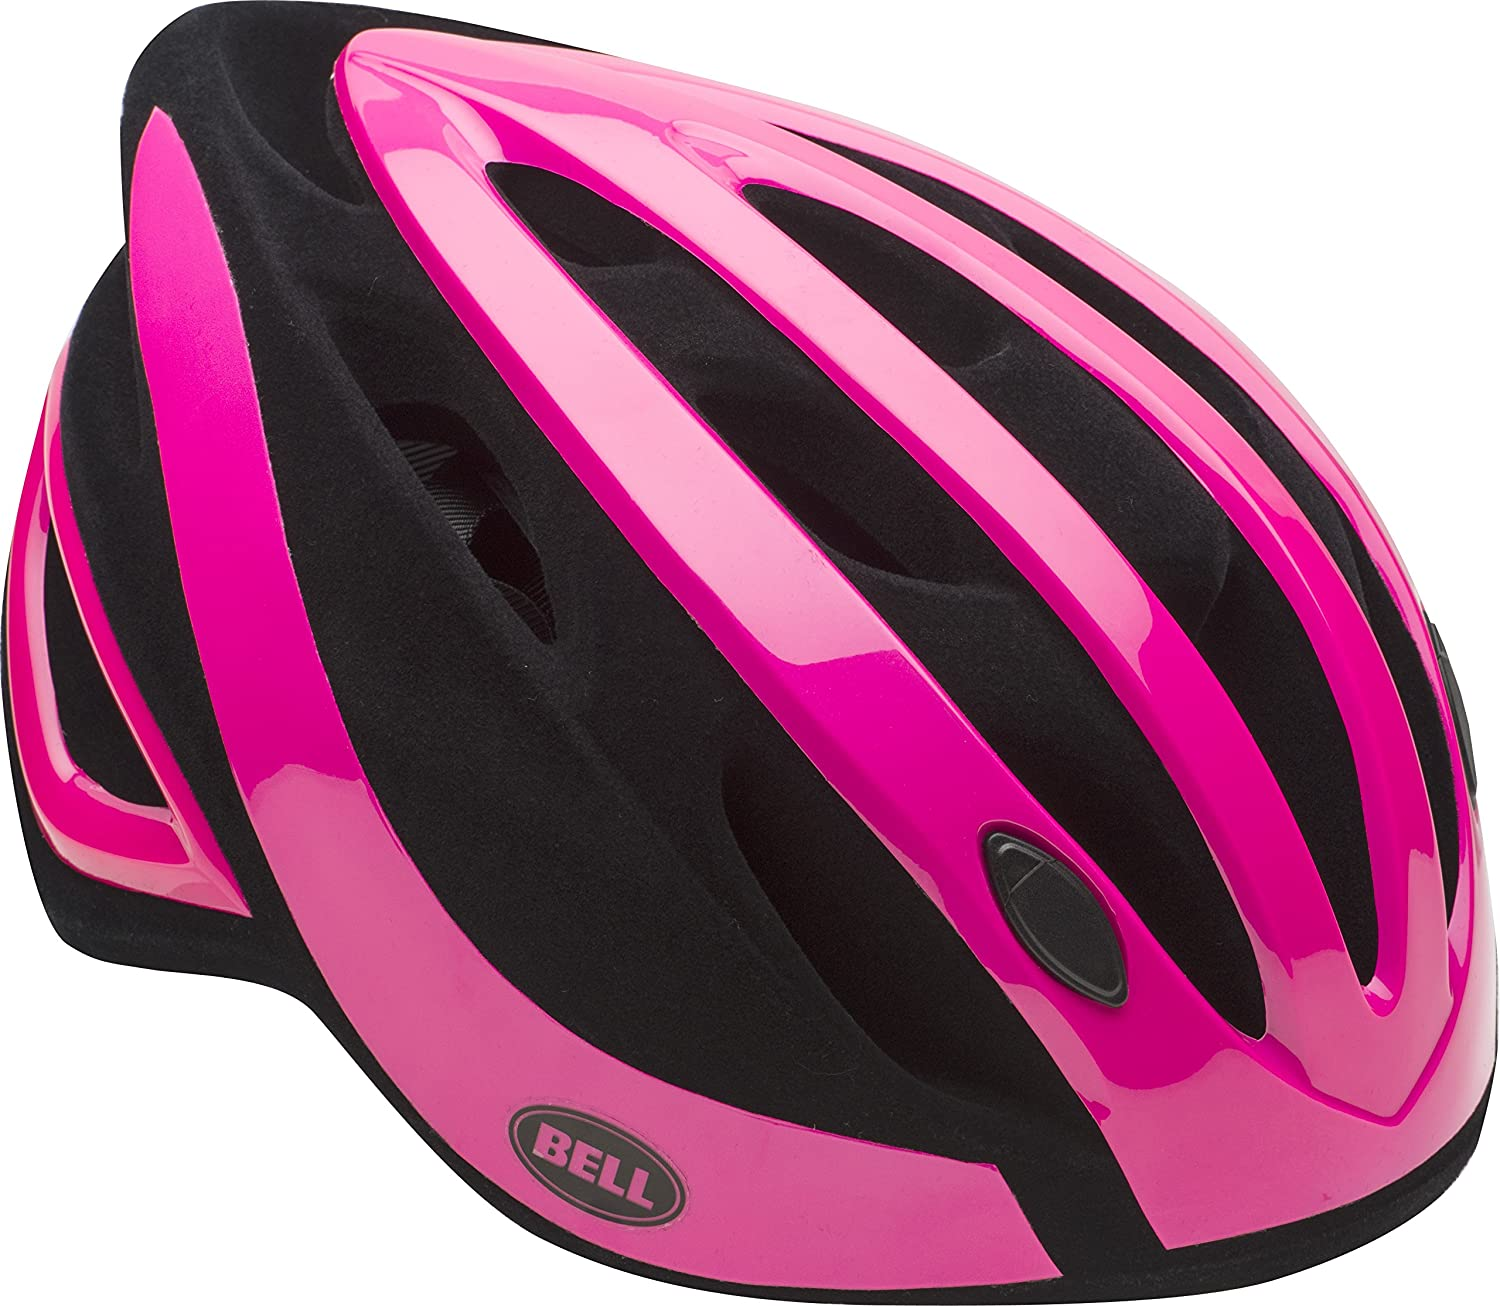 Amazon.com : Bell Adult Impel Bike Helmet, Gloss Pink/Black Flocked : Sports & Outdoors